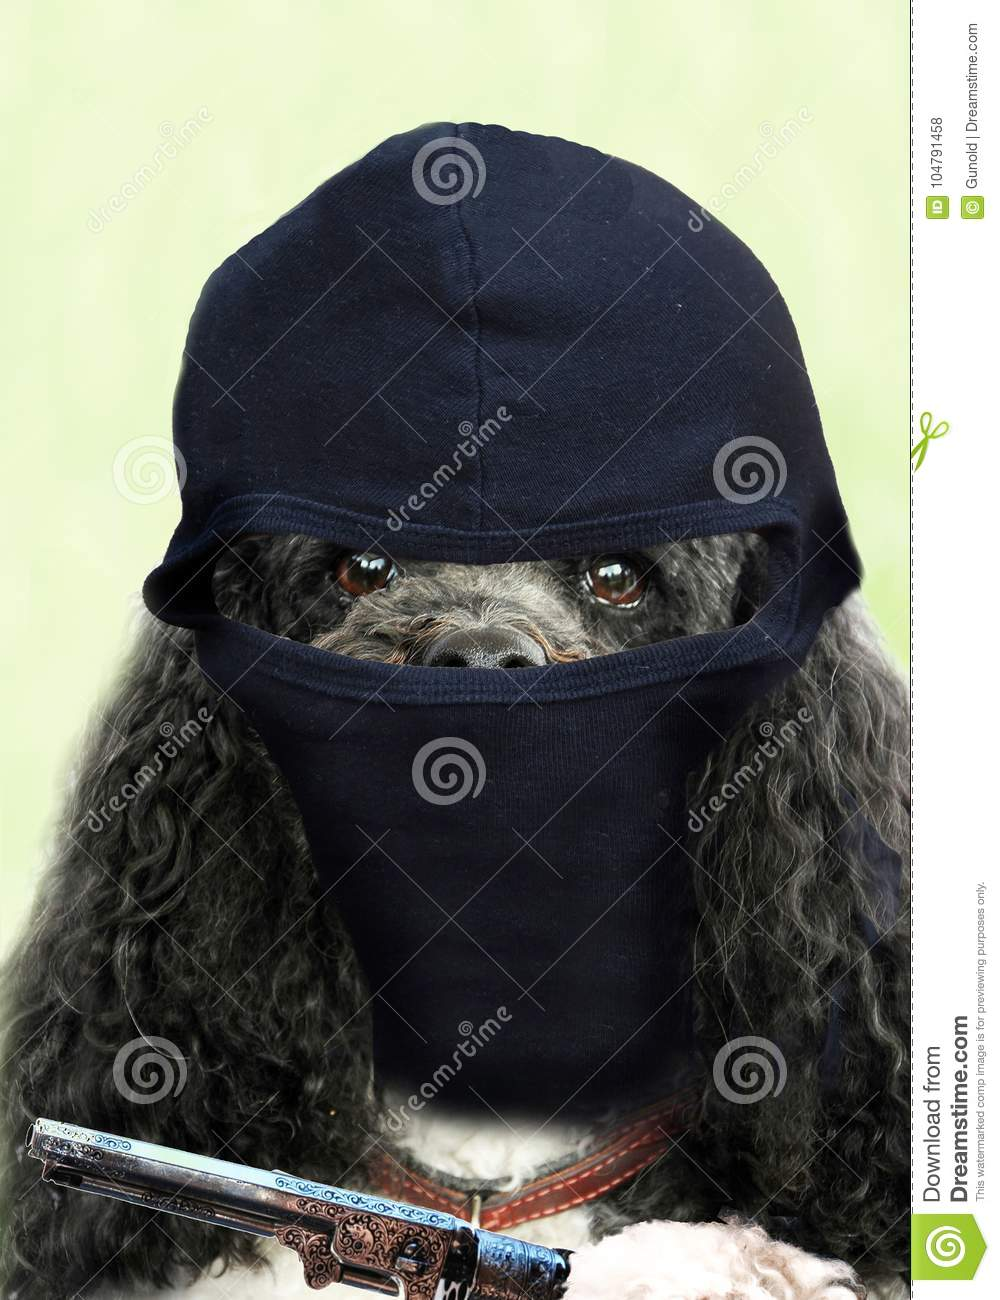 Bad poodle dog making a robbery. Background photo for your mobile cell phone or as wallpaper or screen saver